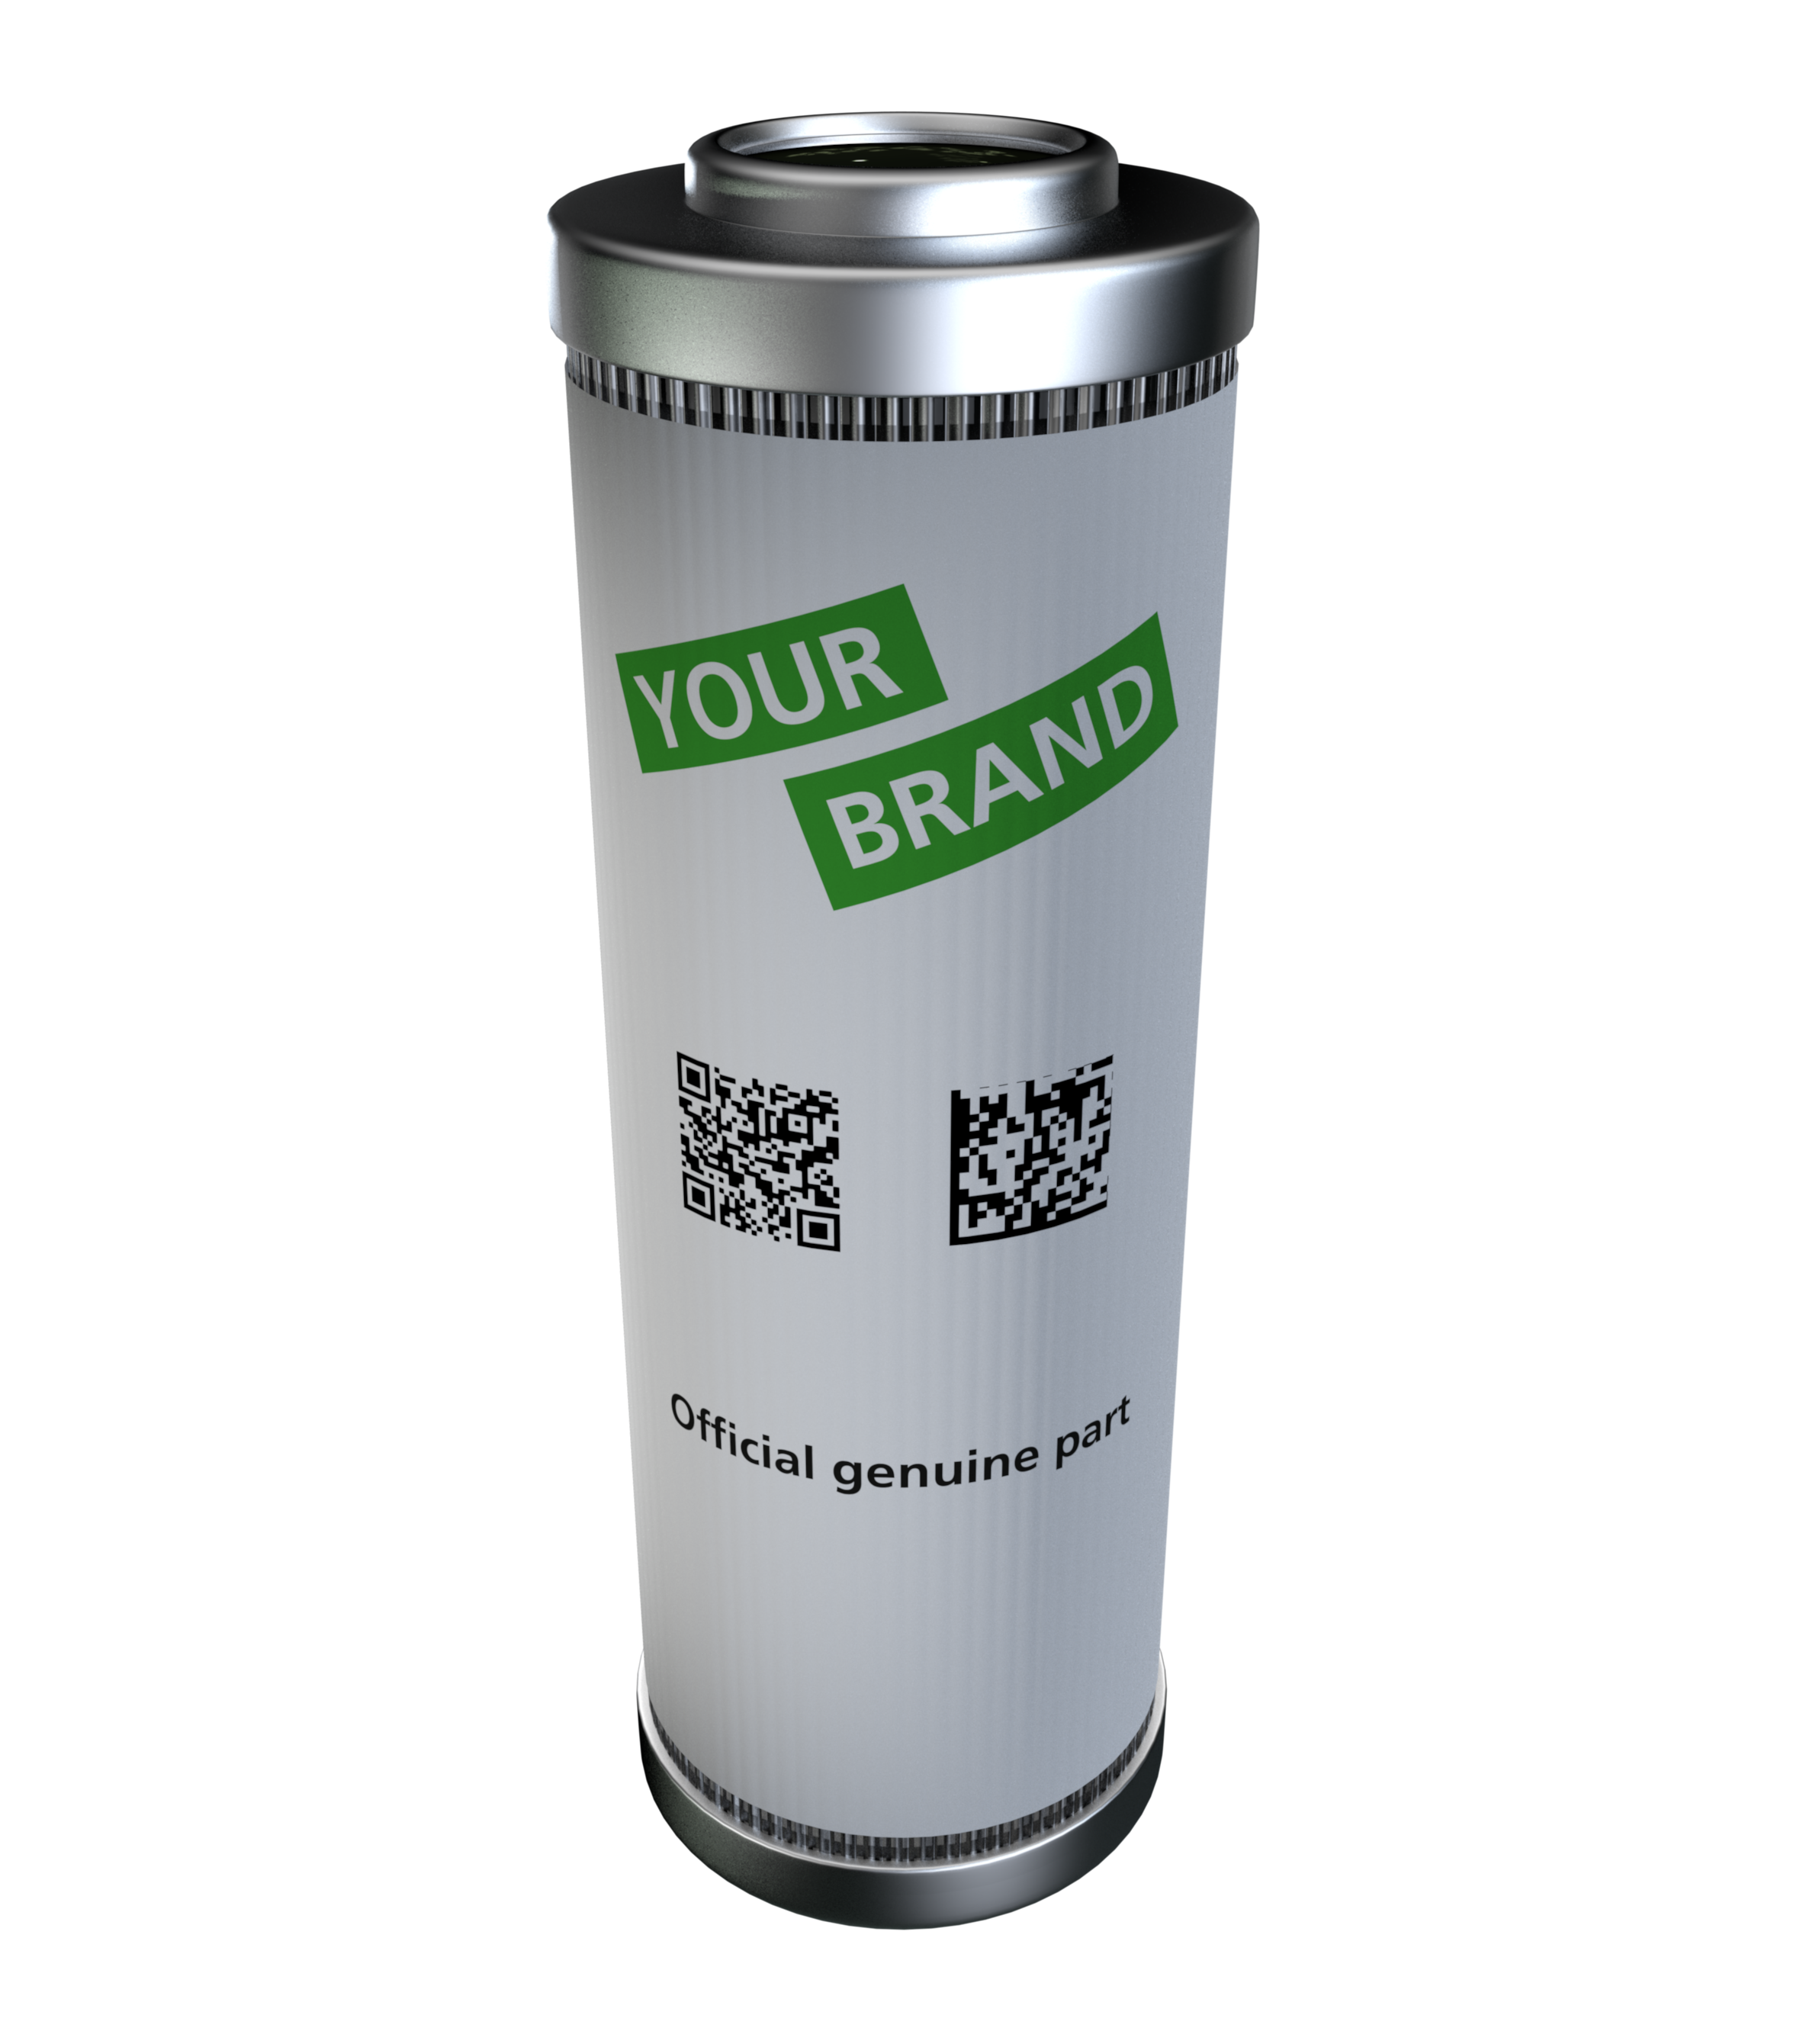 YourBrand_03